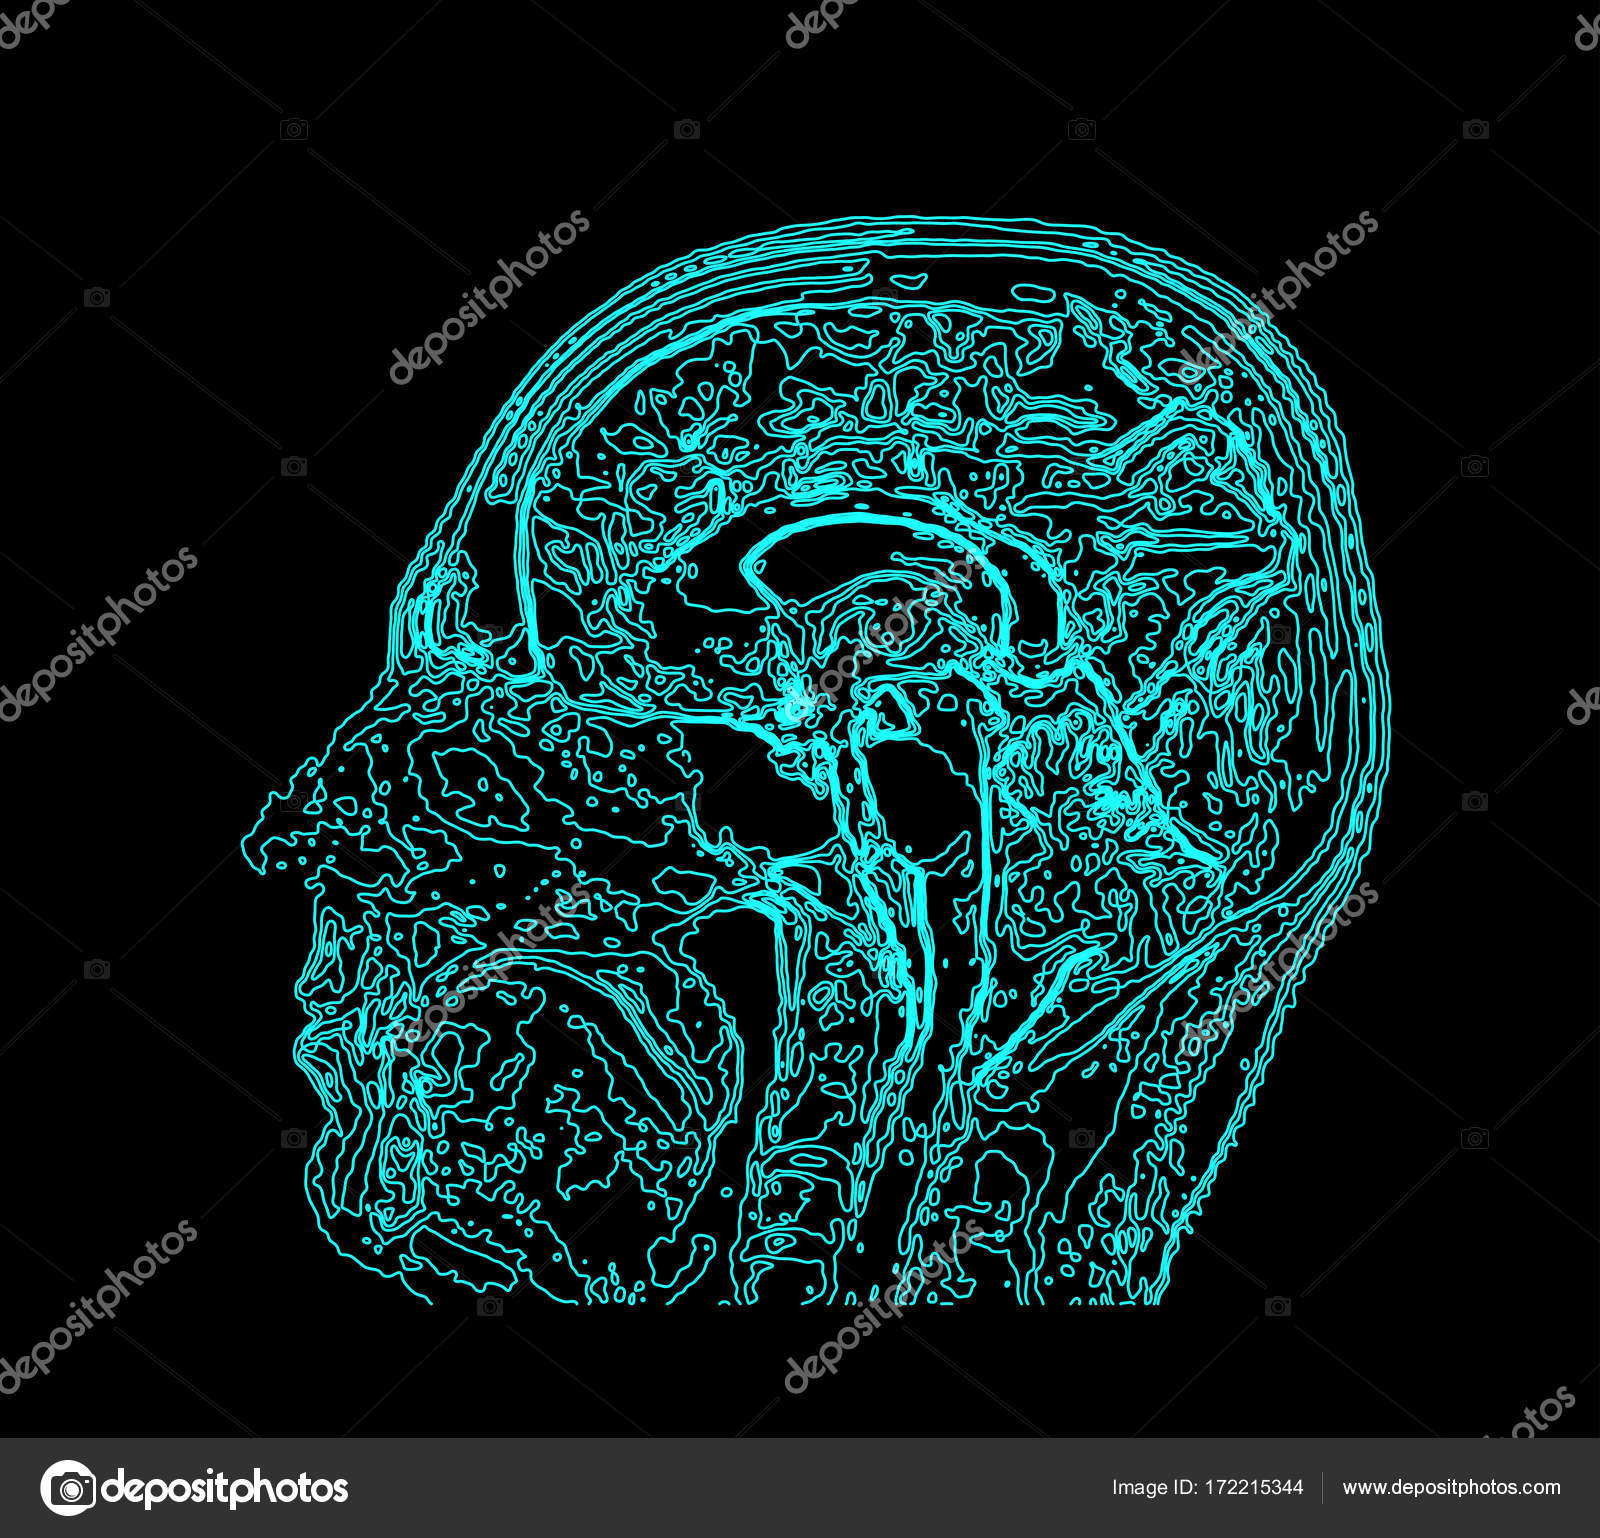 Topographic map mri of the human brain stock vector mpavlov topographic map mri of the human brain stock vector ccuart Image collections